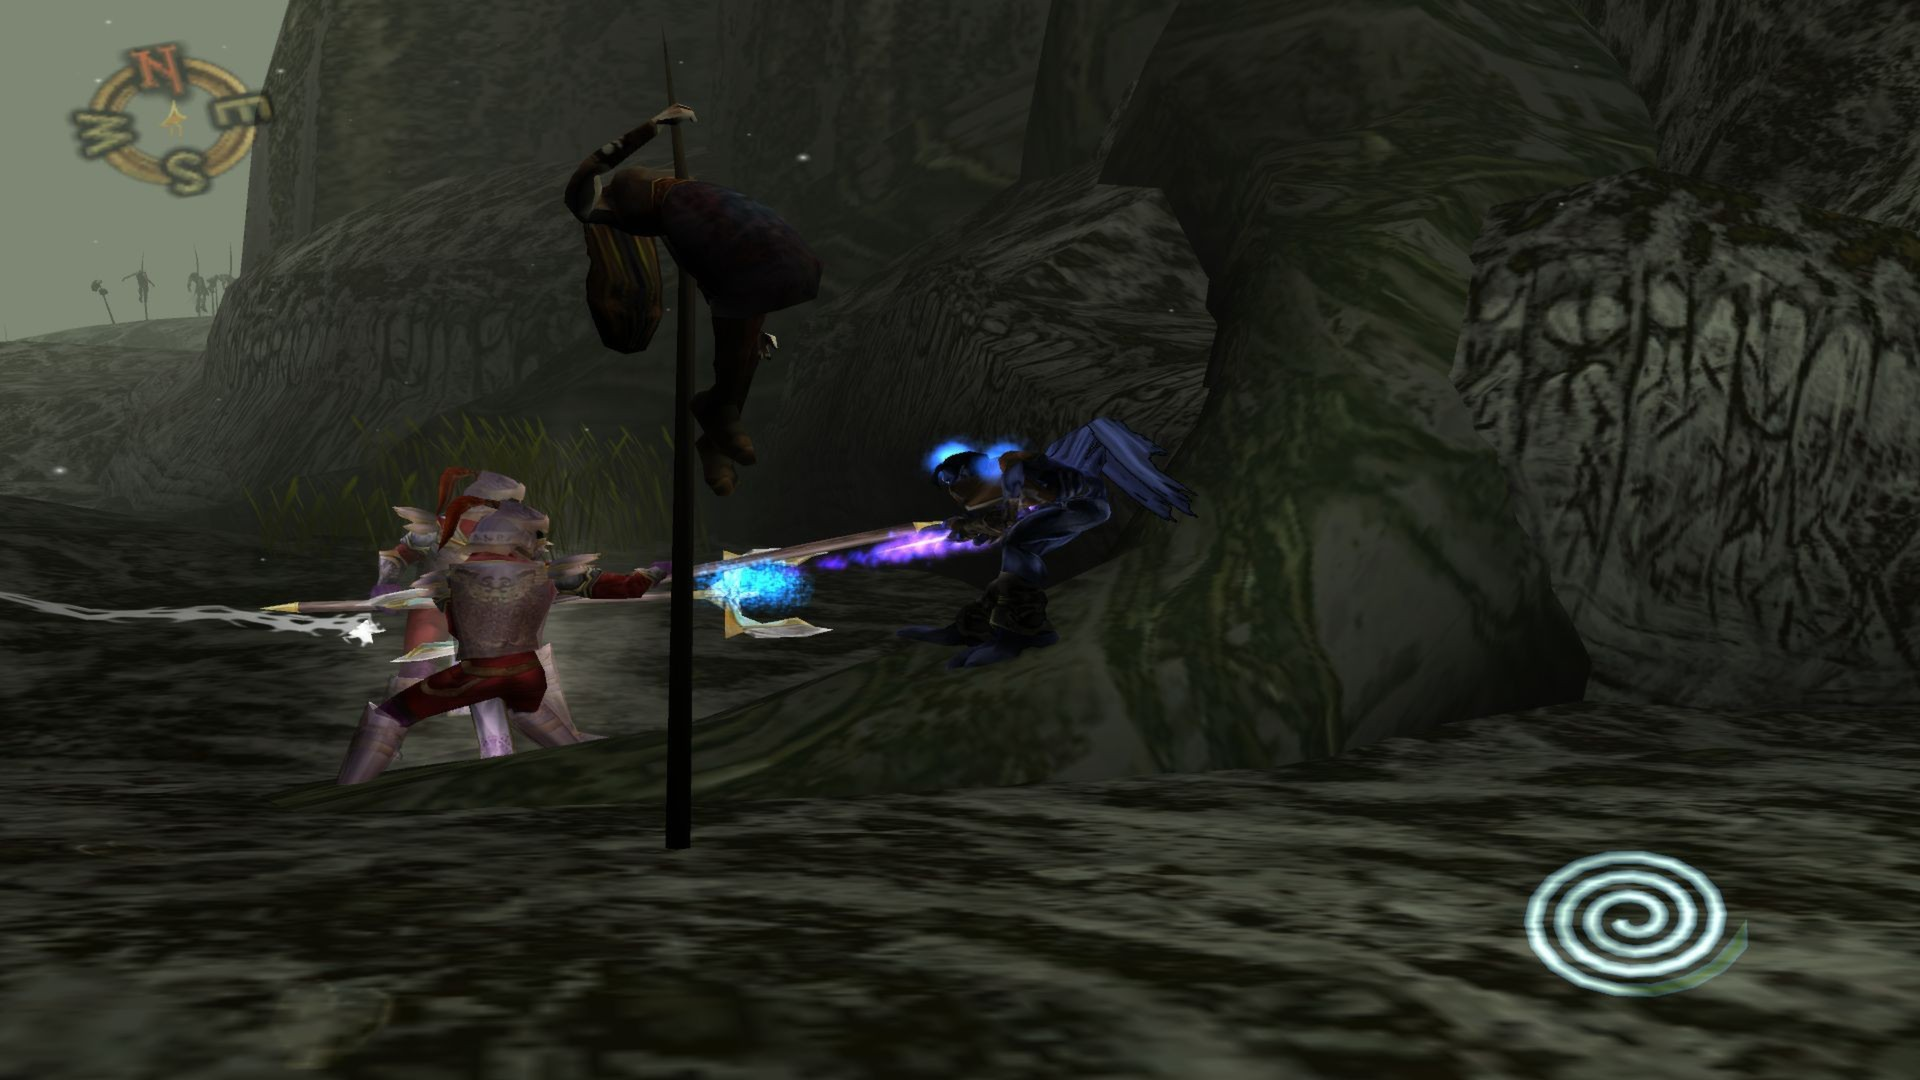 3d Action Game Wallpaper Download Legacy Of Kain Soul Reaver 2 Full Pc Game